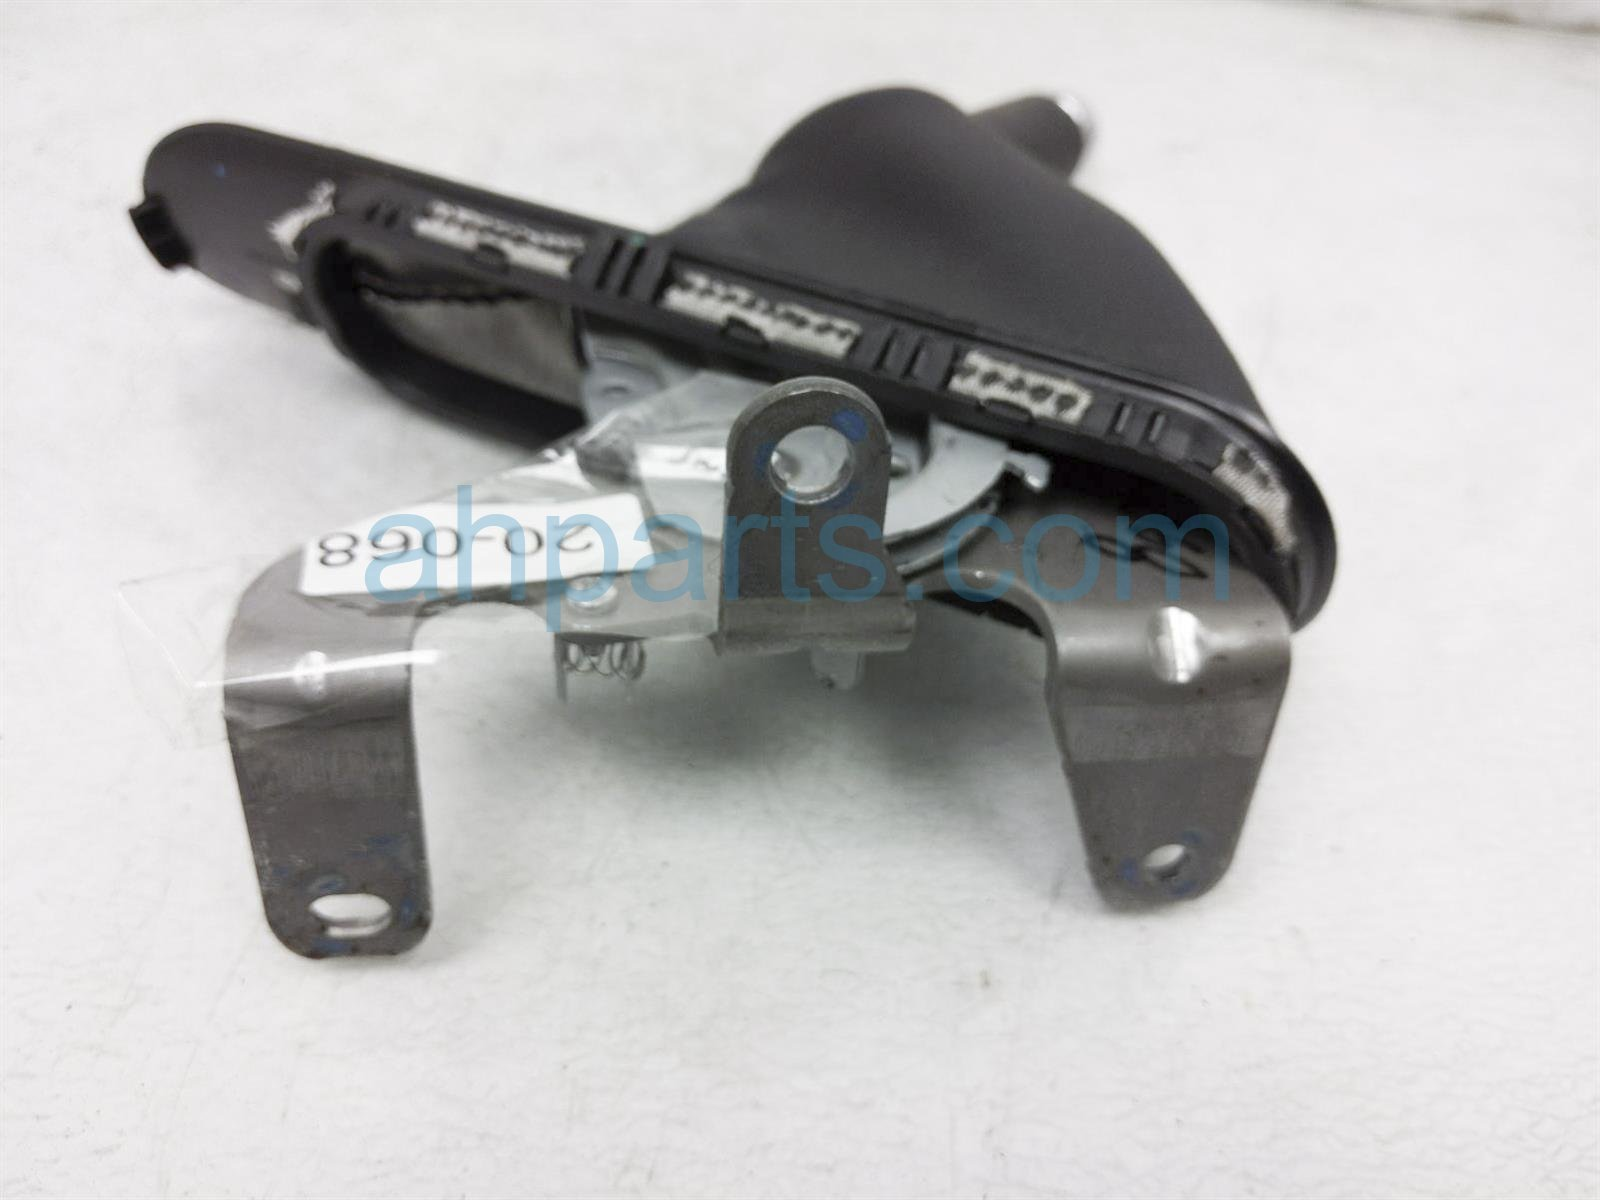 2014 BMW Clubman Minicooper E brake Handle Assy 34 40 6 774 814 Replacement